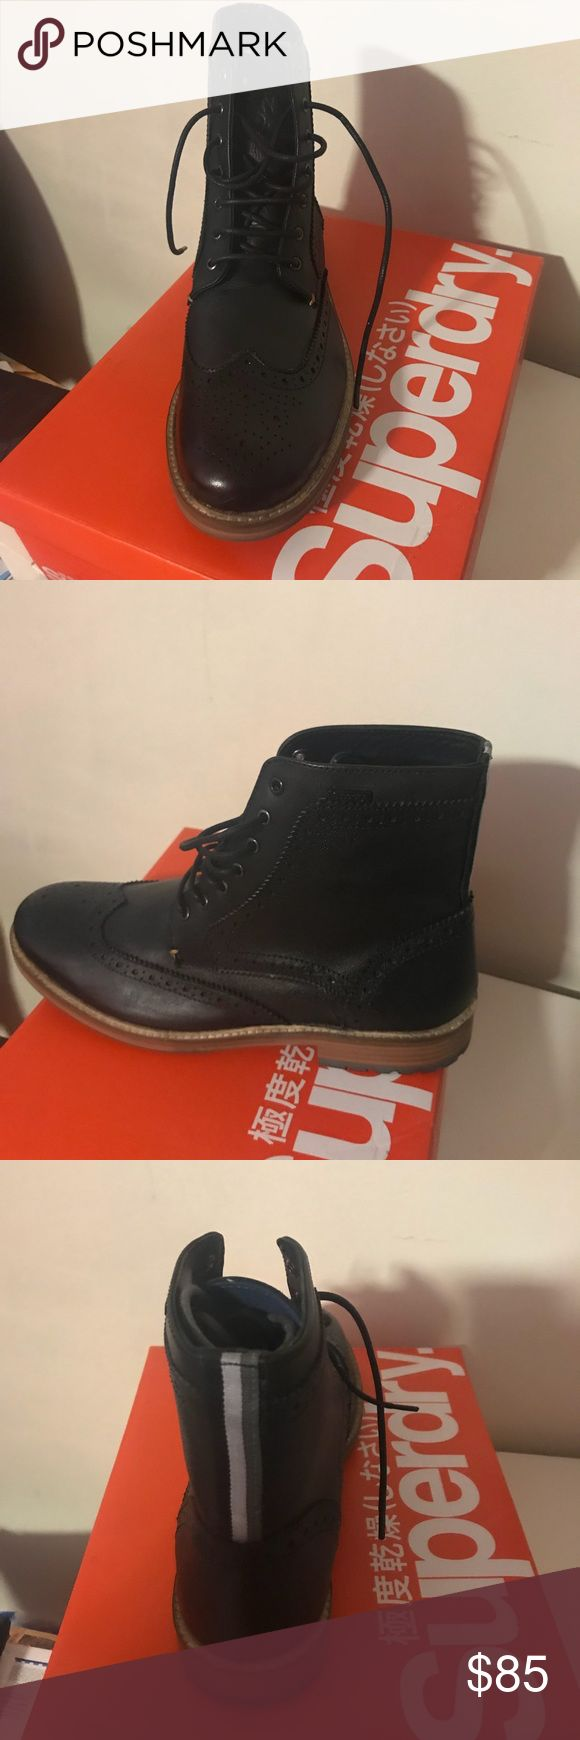 Black SuperDry Boots size 11 Blacks boots by Super Dry. Listed as a US size 12 fits like 11. Never worn. Brand new. Perfect condition. Paid $100.00 selling for $85.00 Super Dry Shoes Ankle Boots & Booties